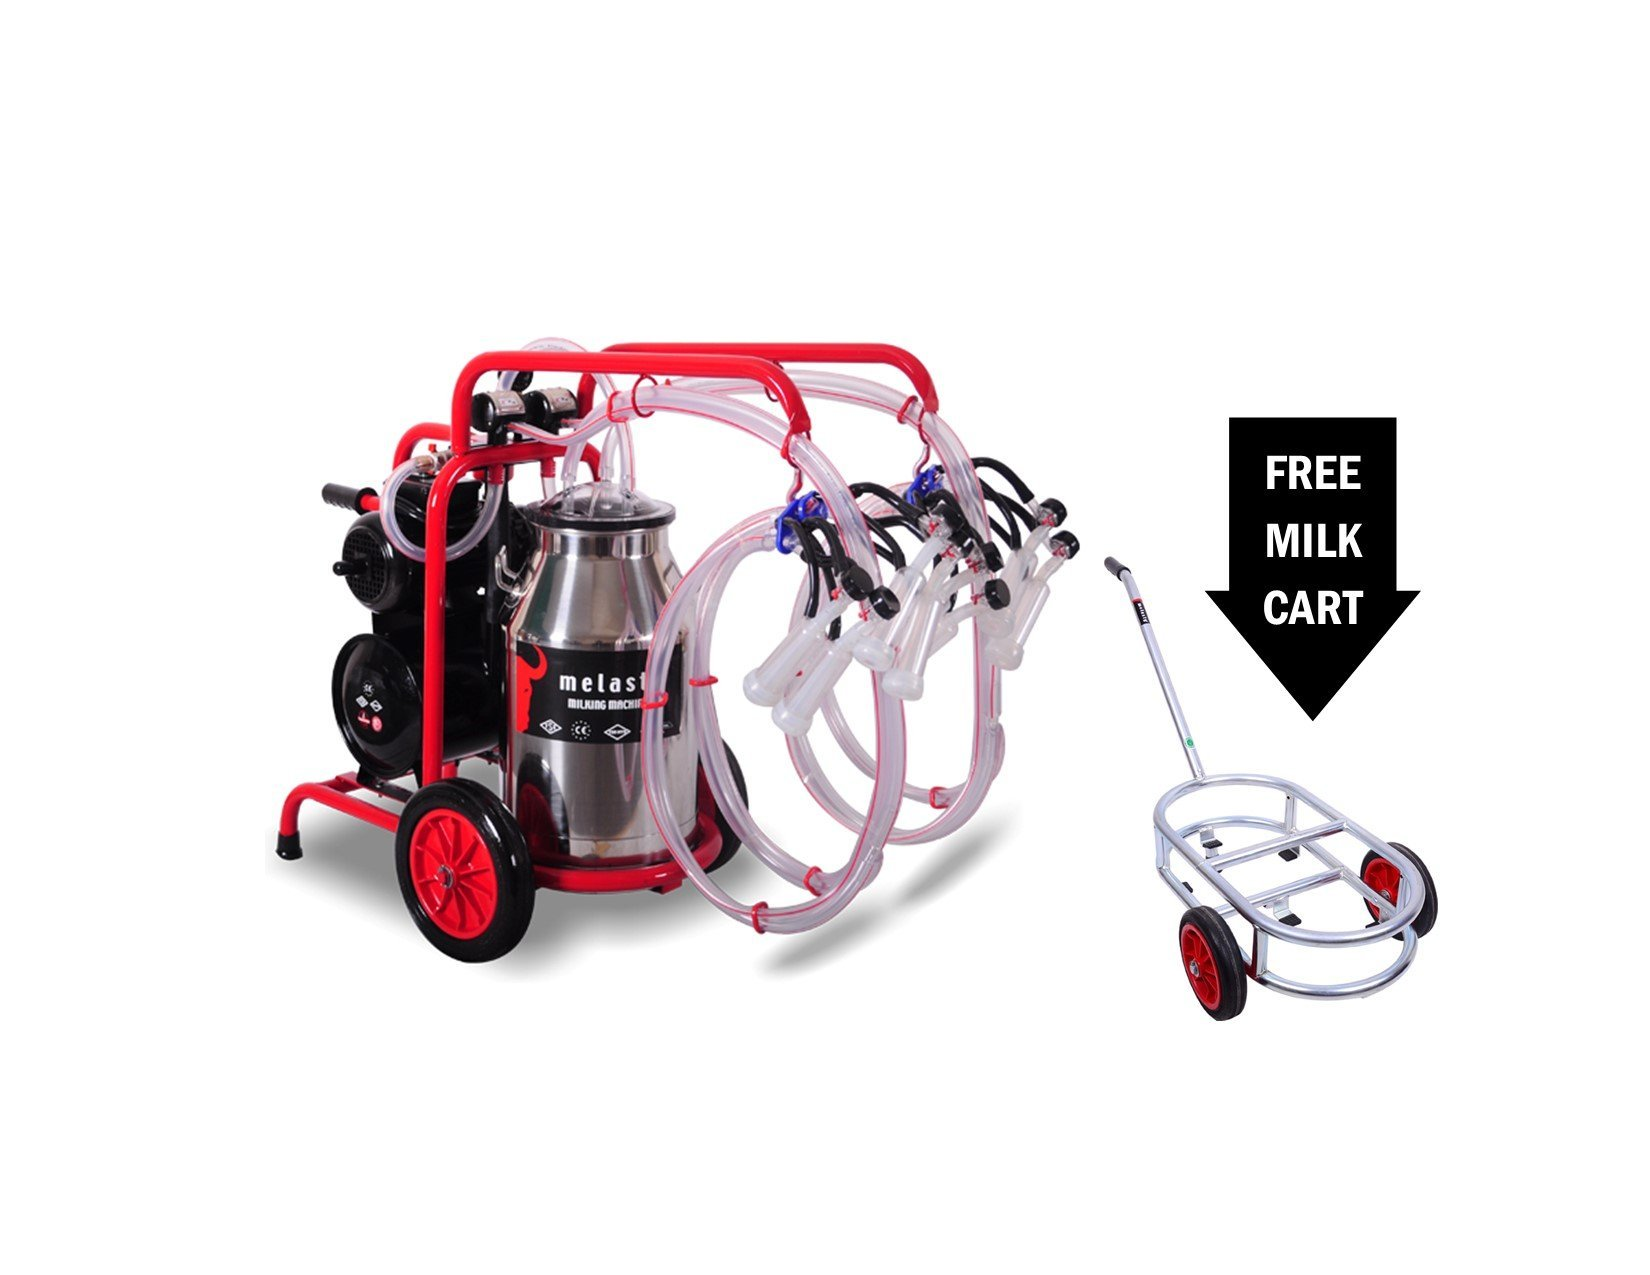 Melasty, Quadruple Milking Machine for Goats with Maintenance Kit and Trolley Included! TKKC4-PS